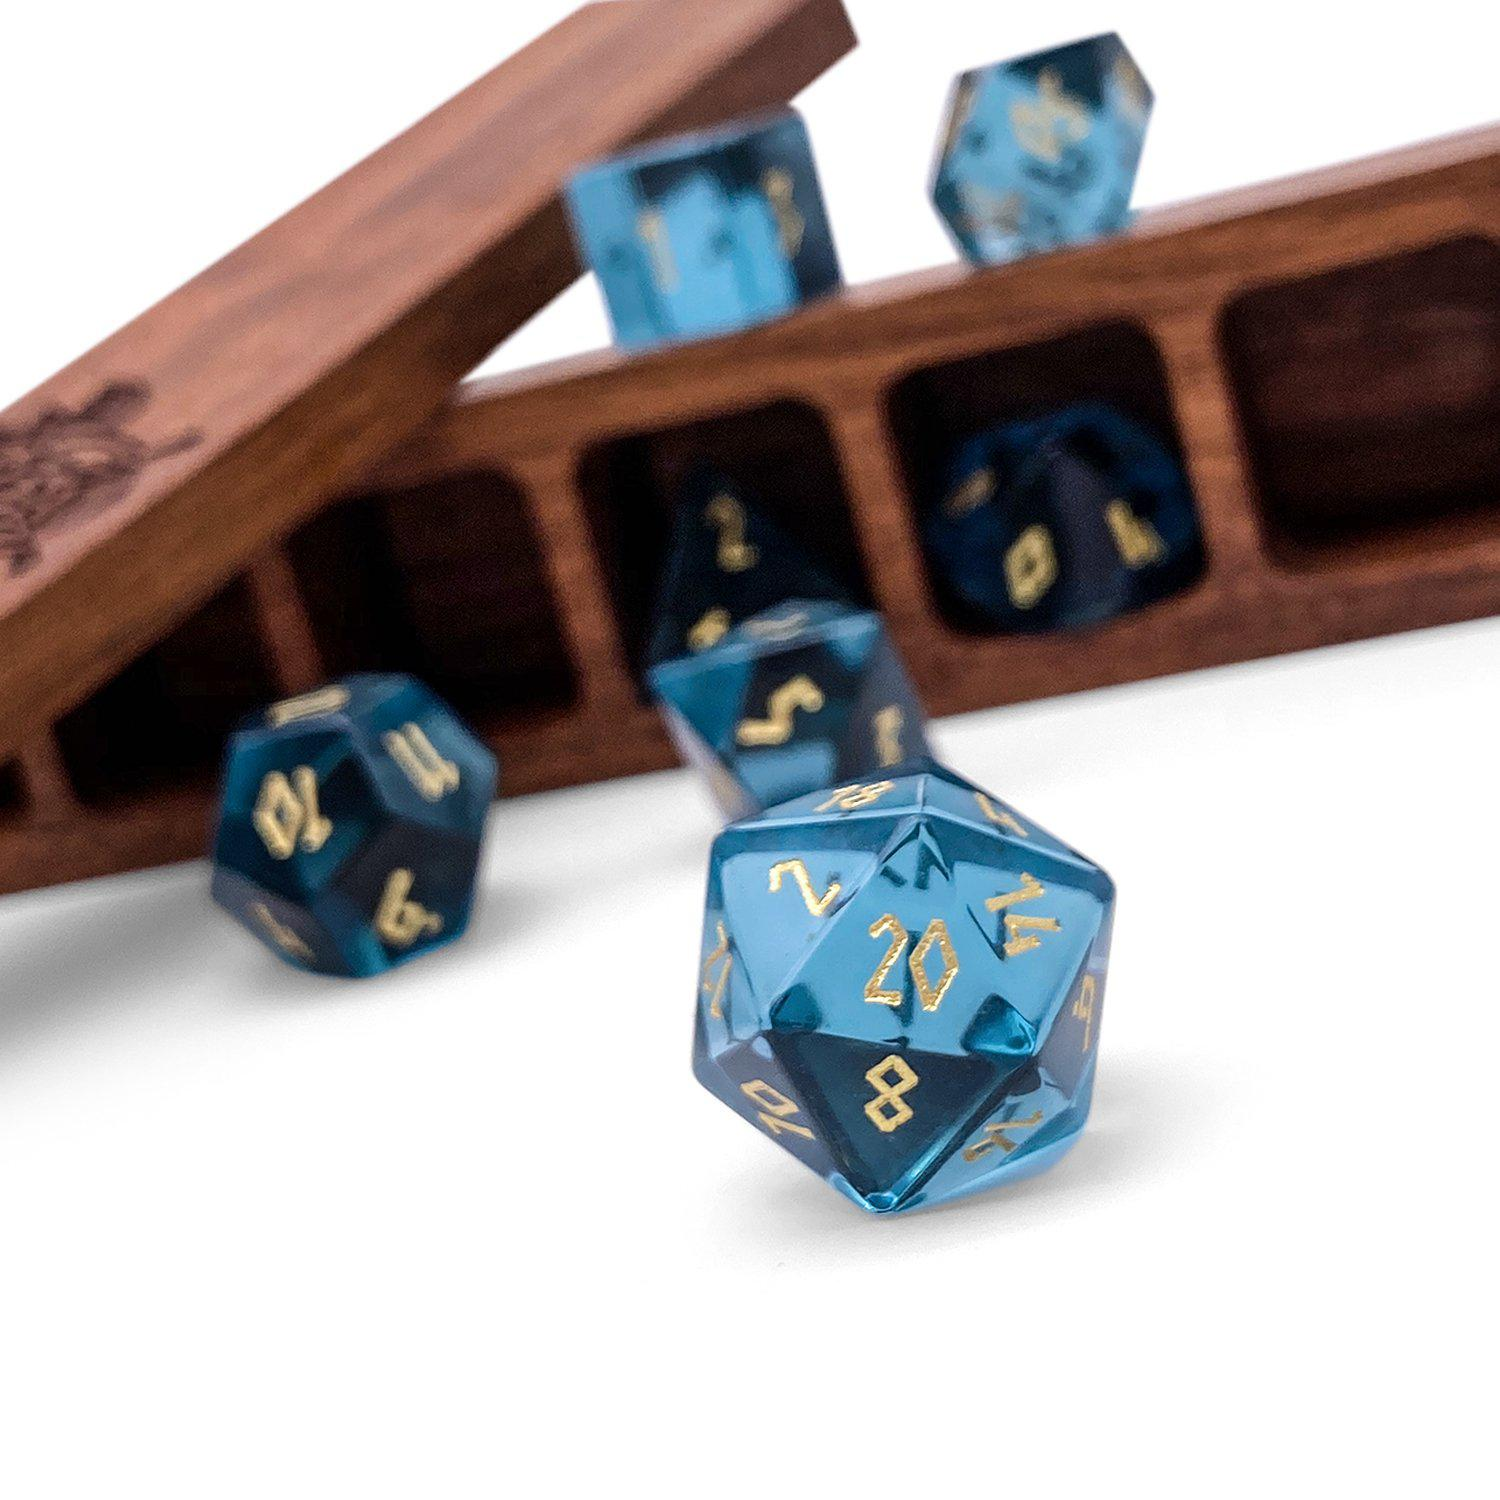 Zircon Glass - Aquamarine - 7 Piece Glass Dice Set